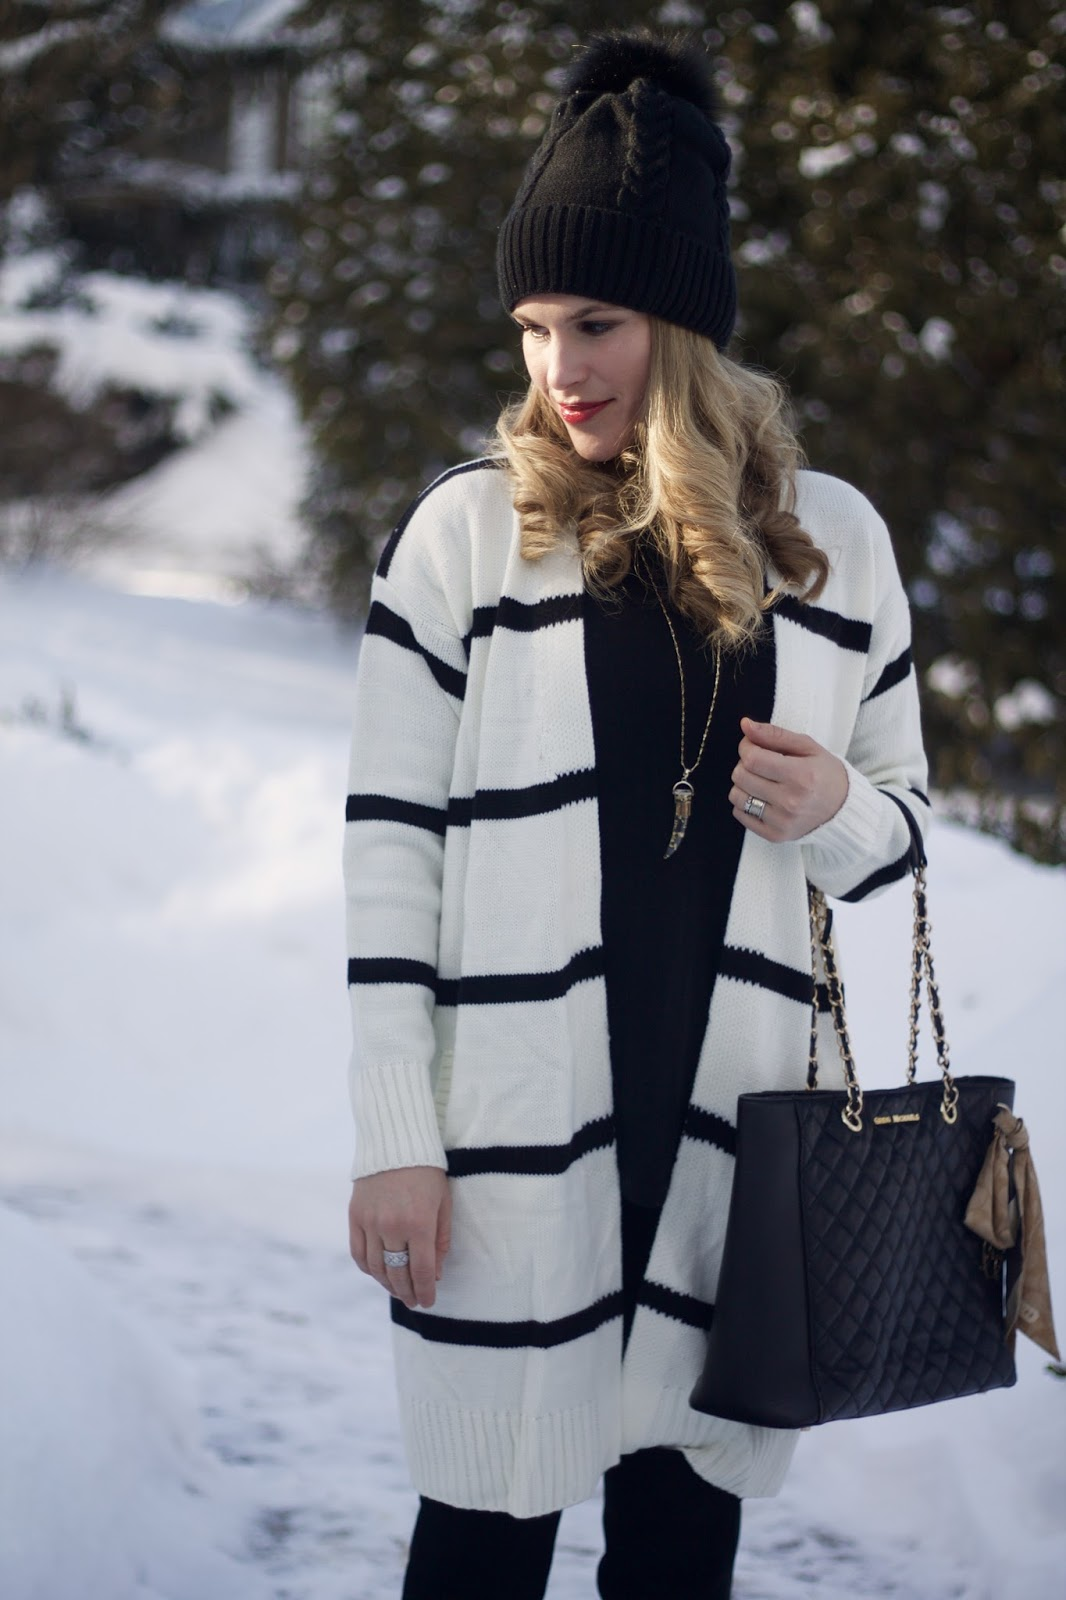 black jeans, black and white striped cardigan, black OTK boots, black quilted tote, black beanie with fur pom  pom